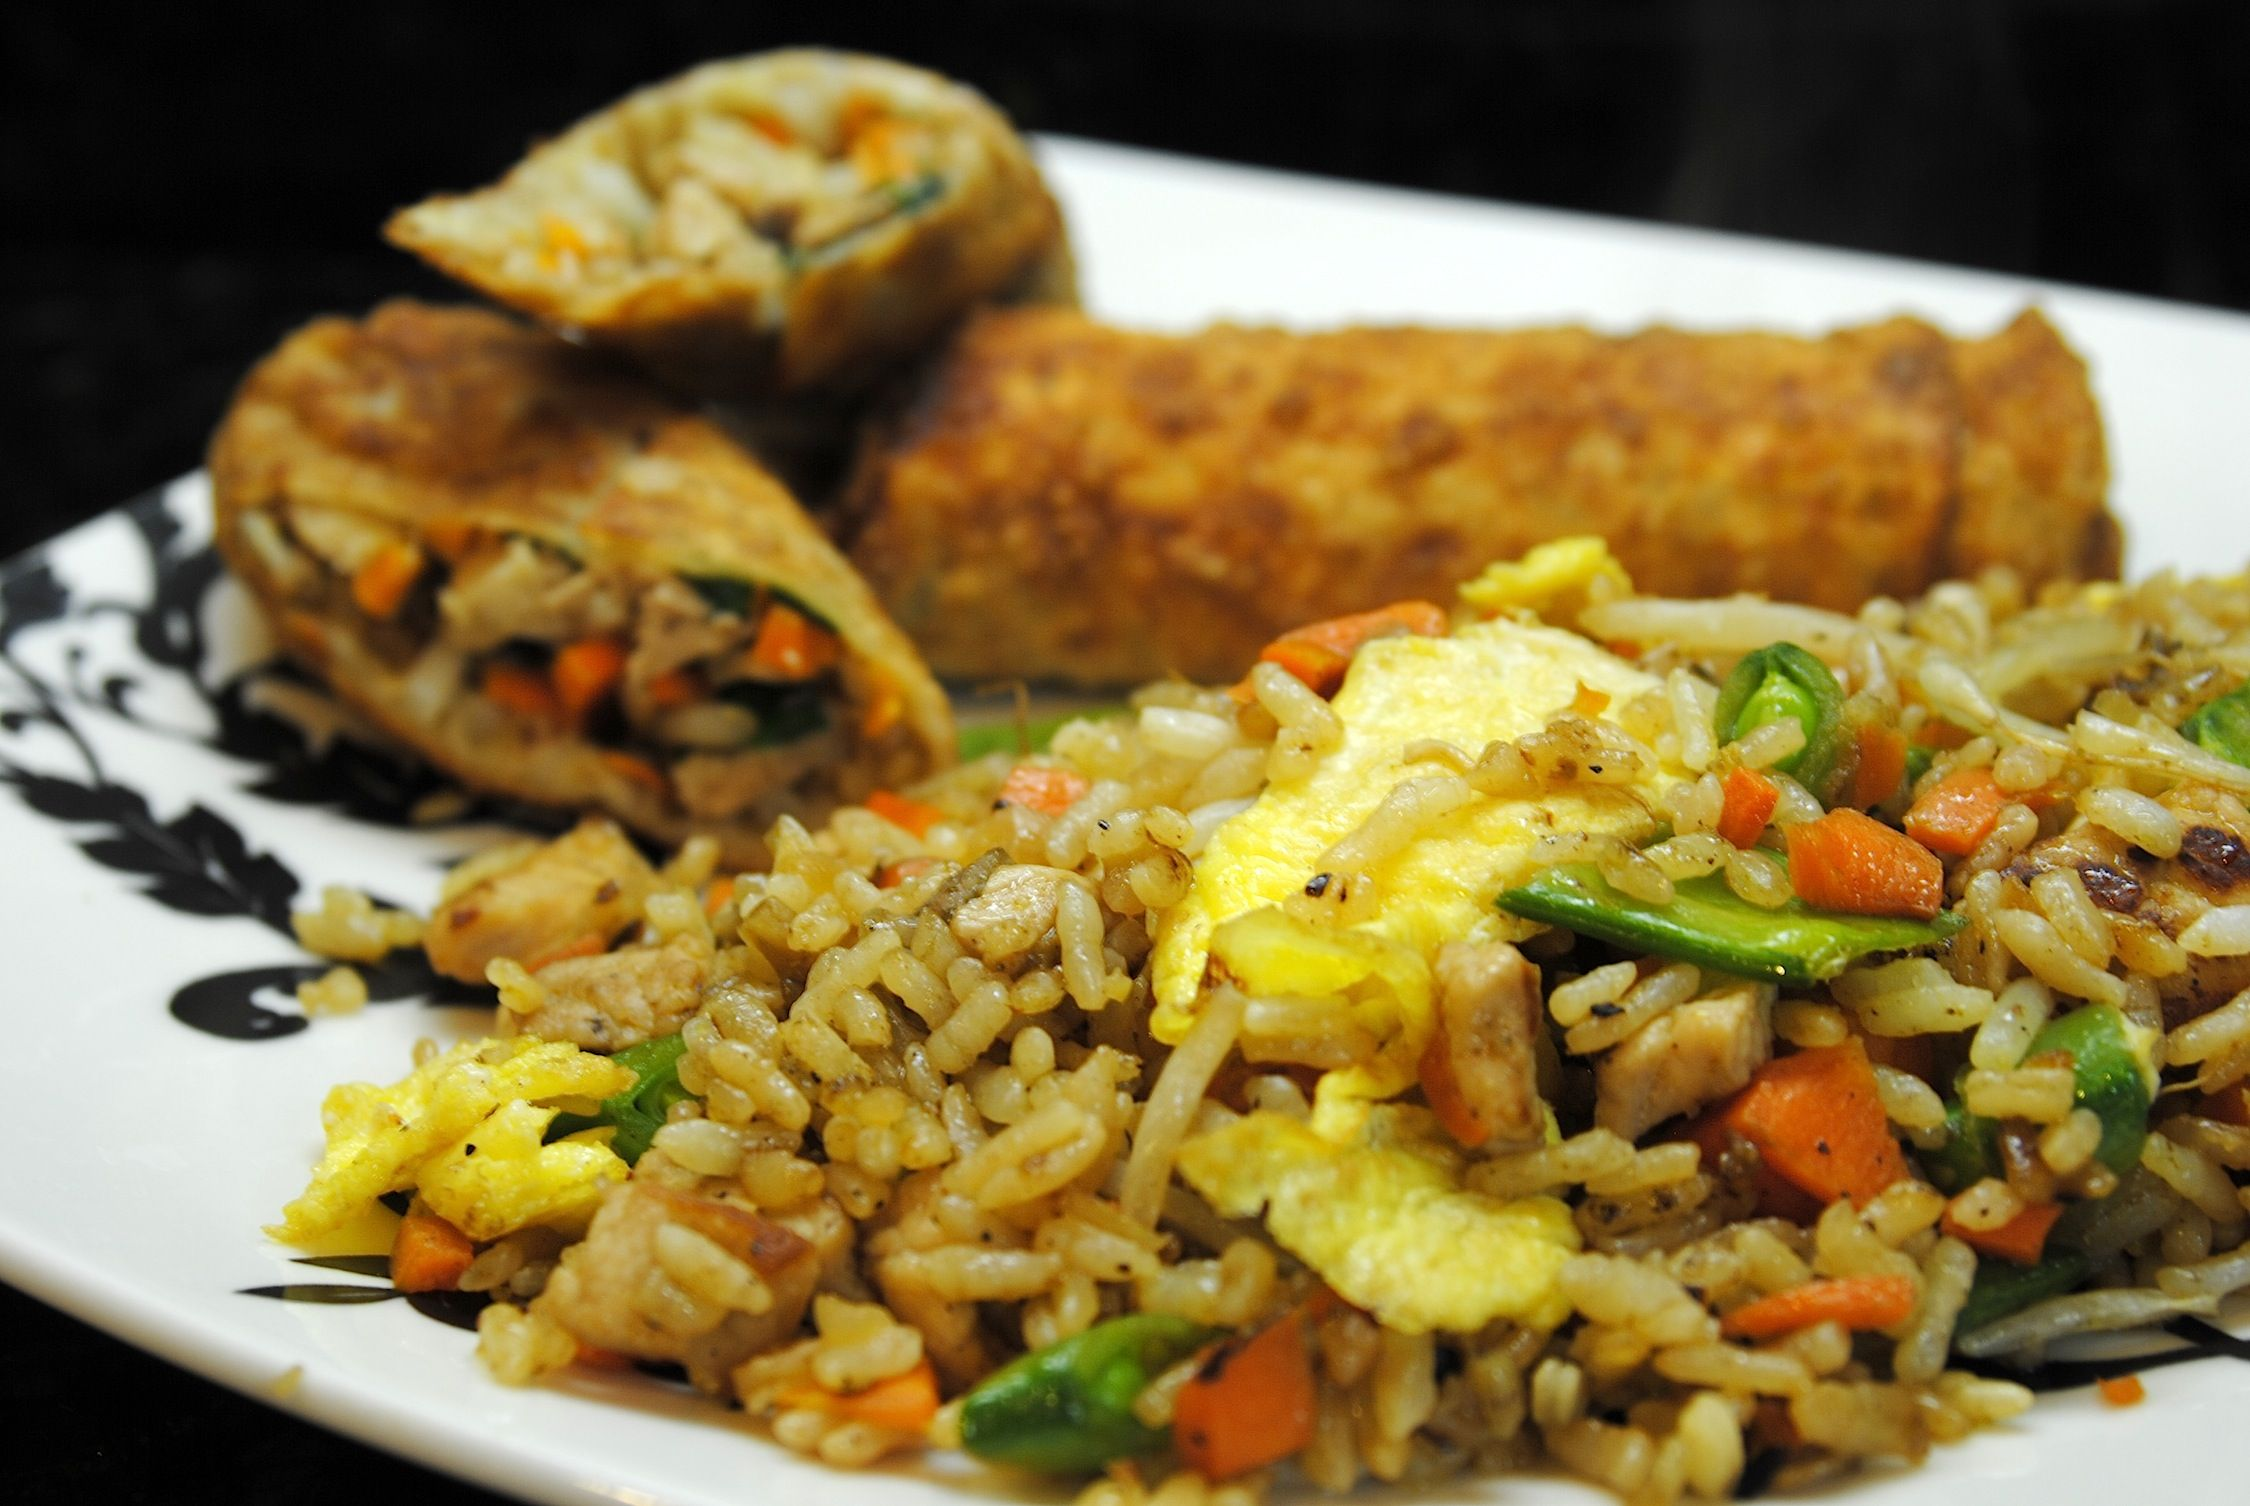 Chicken and veggie egg rolls with pork fried rice recipes chicken and veggie egg rolls with pork fried rice forumfinder Images